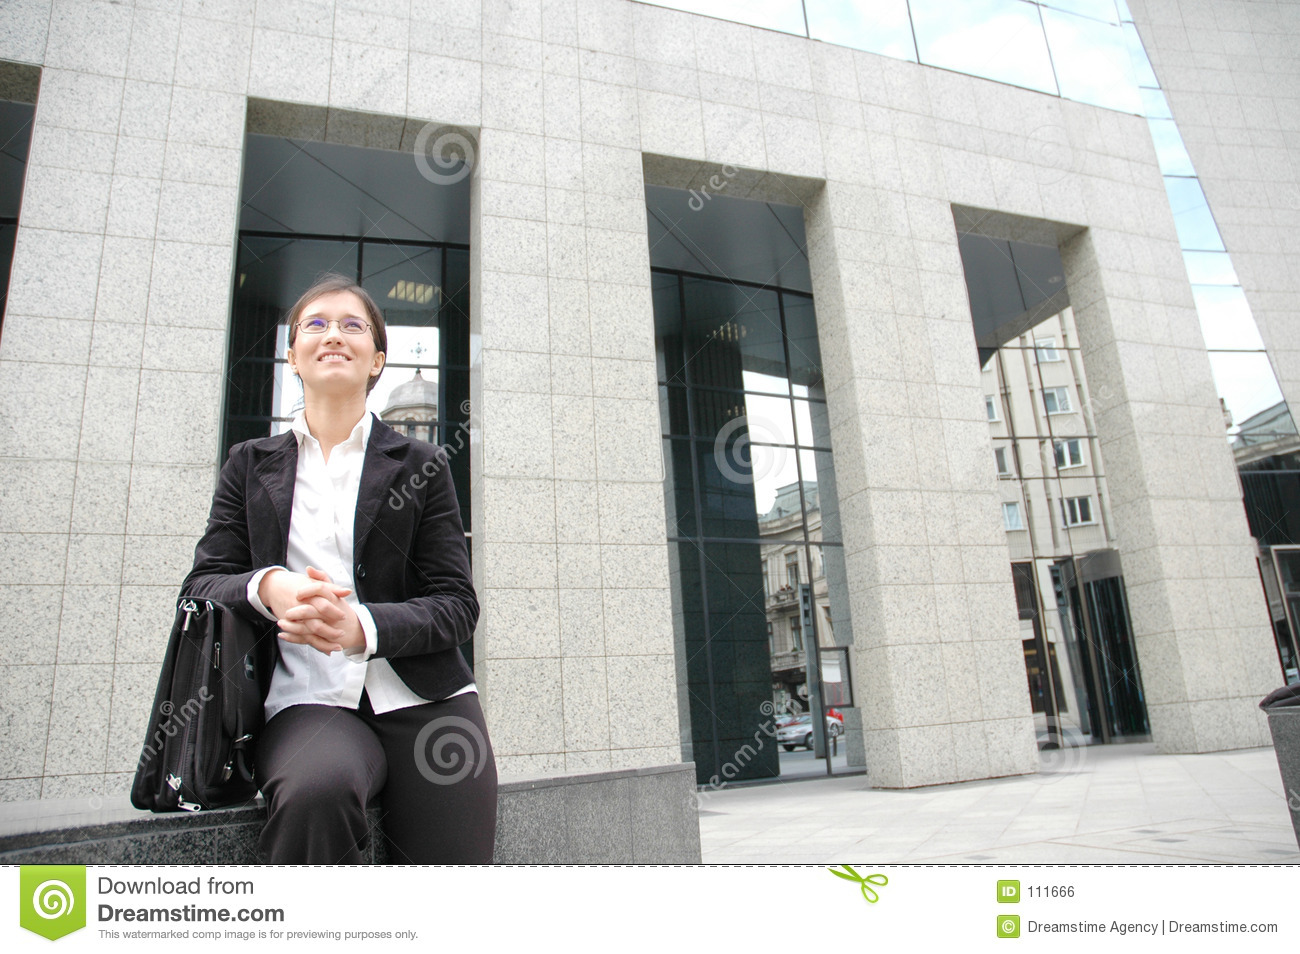 Woman in fron of a corporate building